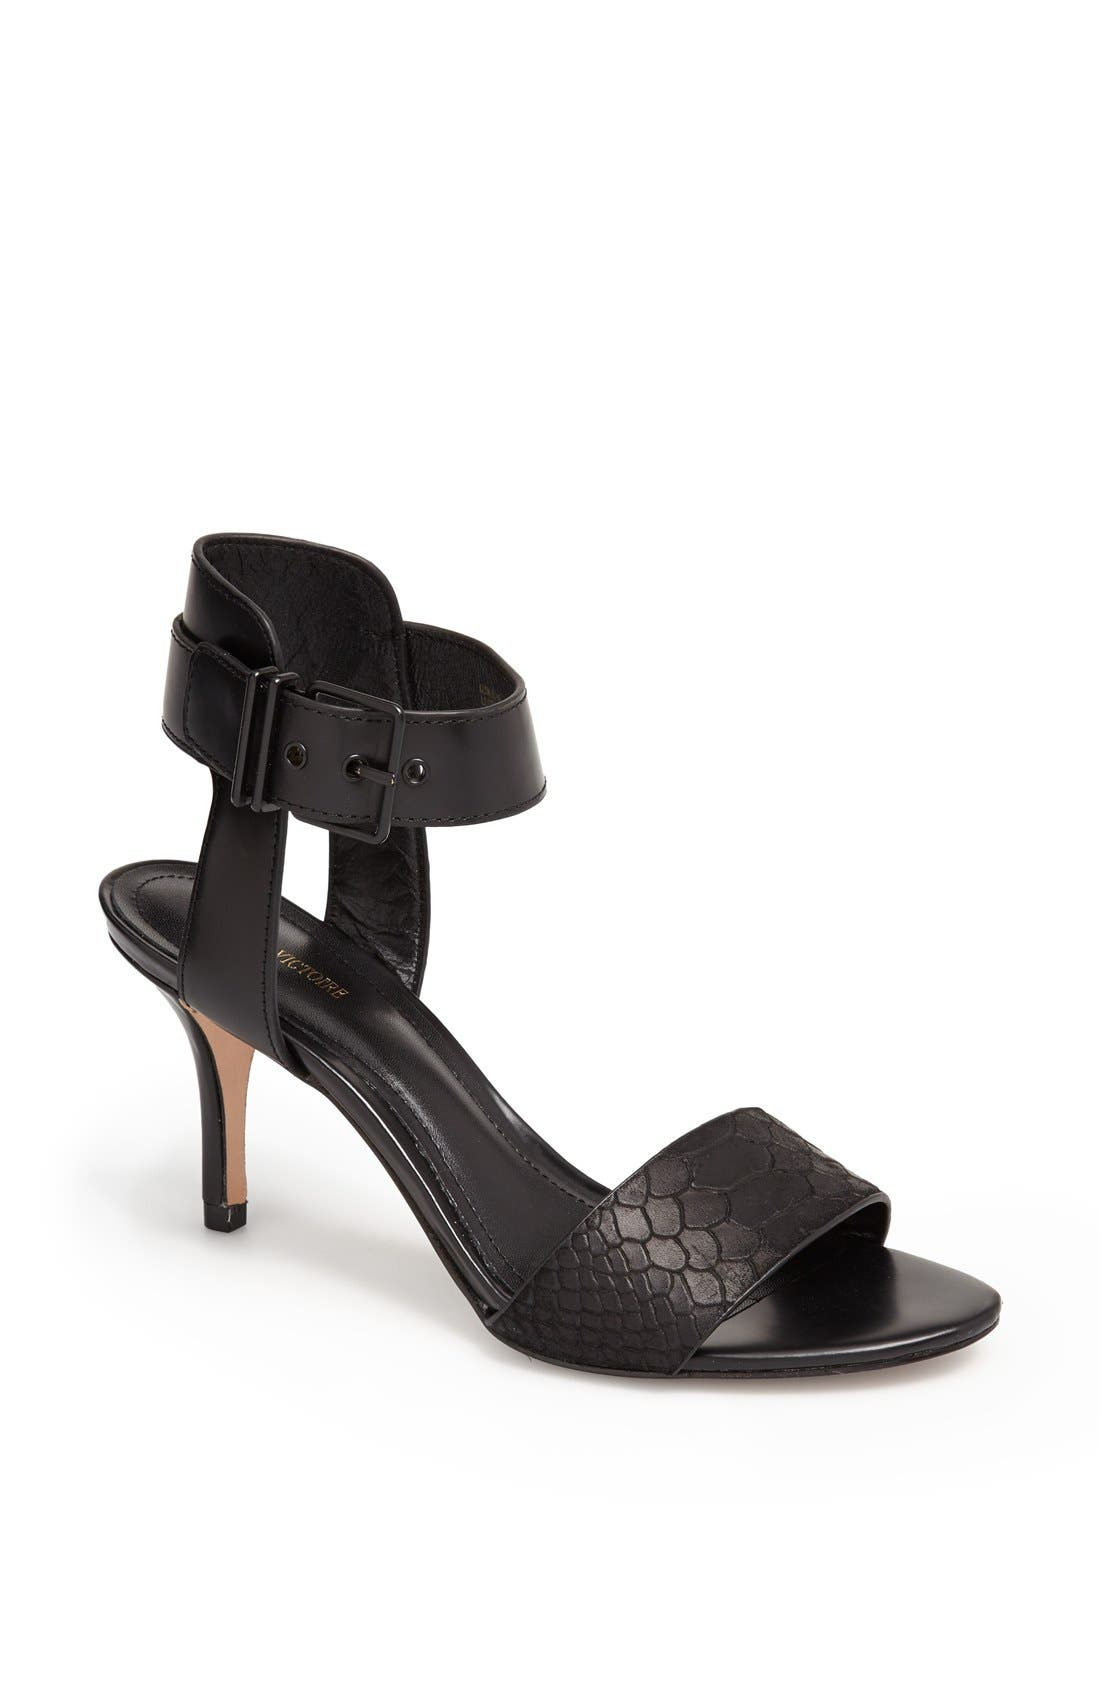 Alternate Image 1 Selected - Pour la Victoire 'Quin' Sandal